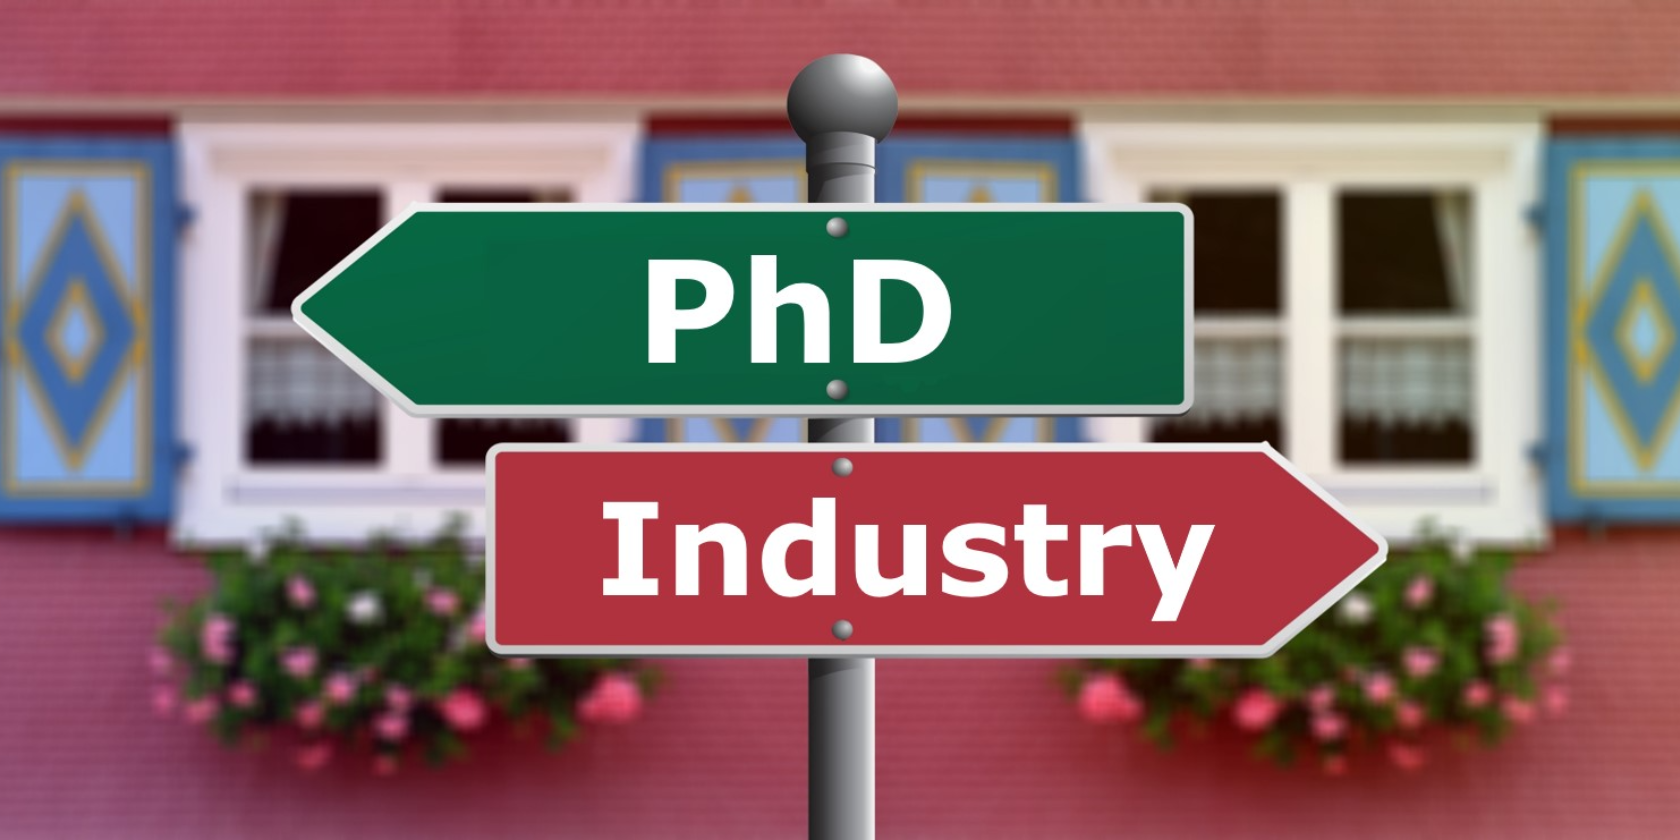 A signpost with the word PhD pointing left and another signpost with the word industry posting right